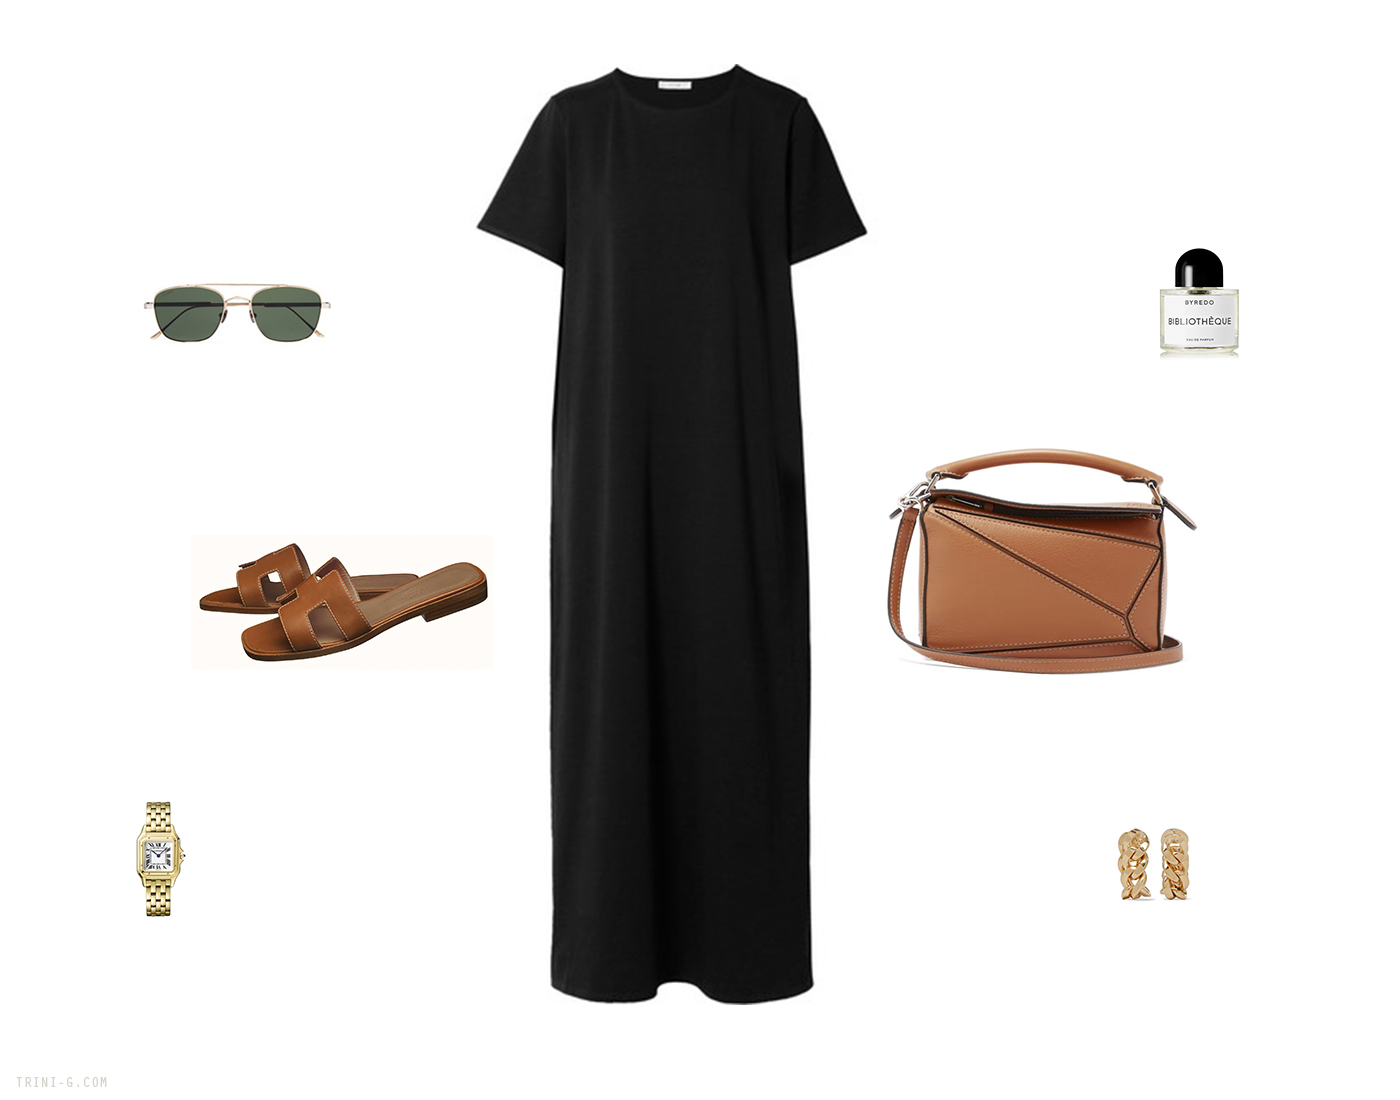 Trini | The Row dress Loewe bag